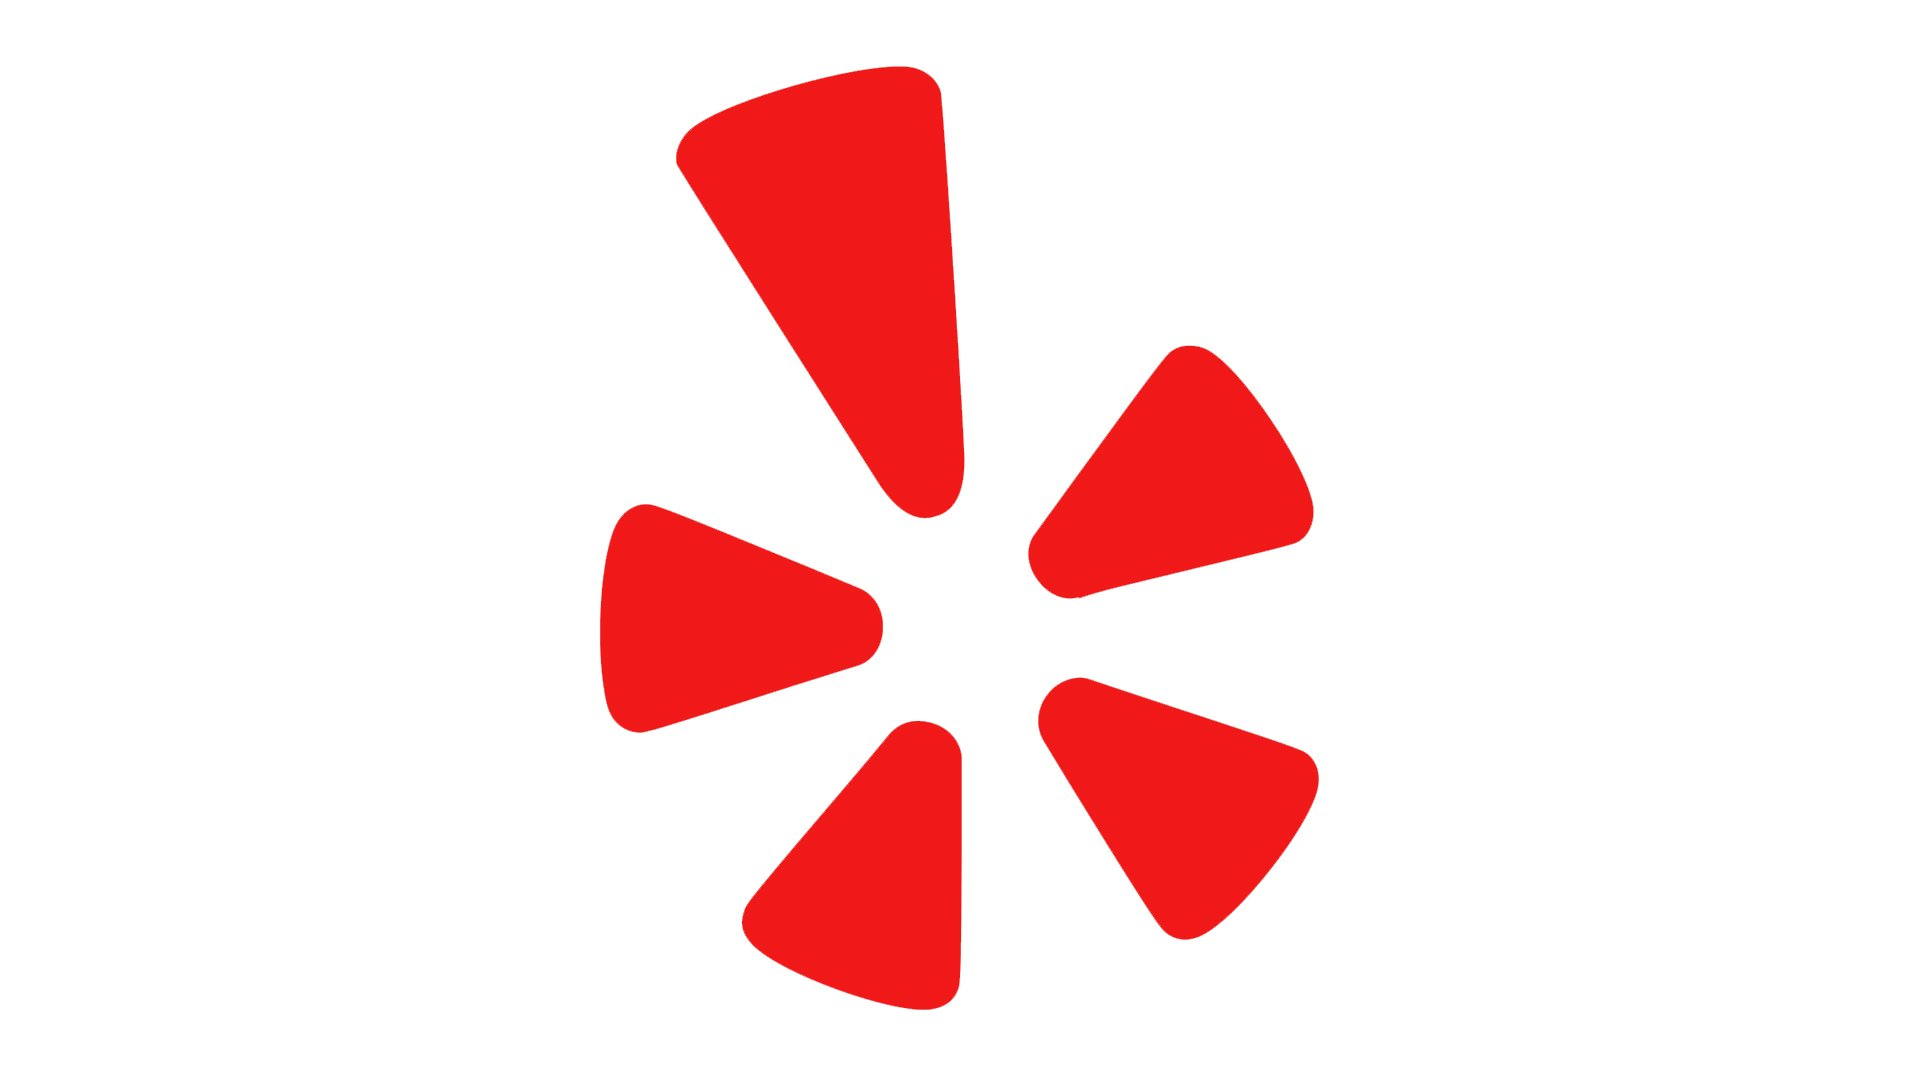 yelp logo yelp symbol meaning history and evolution